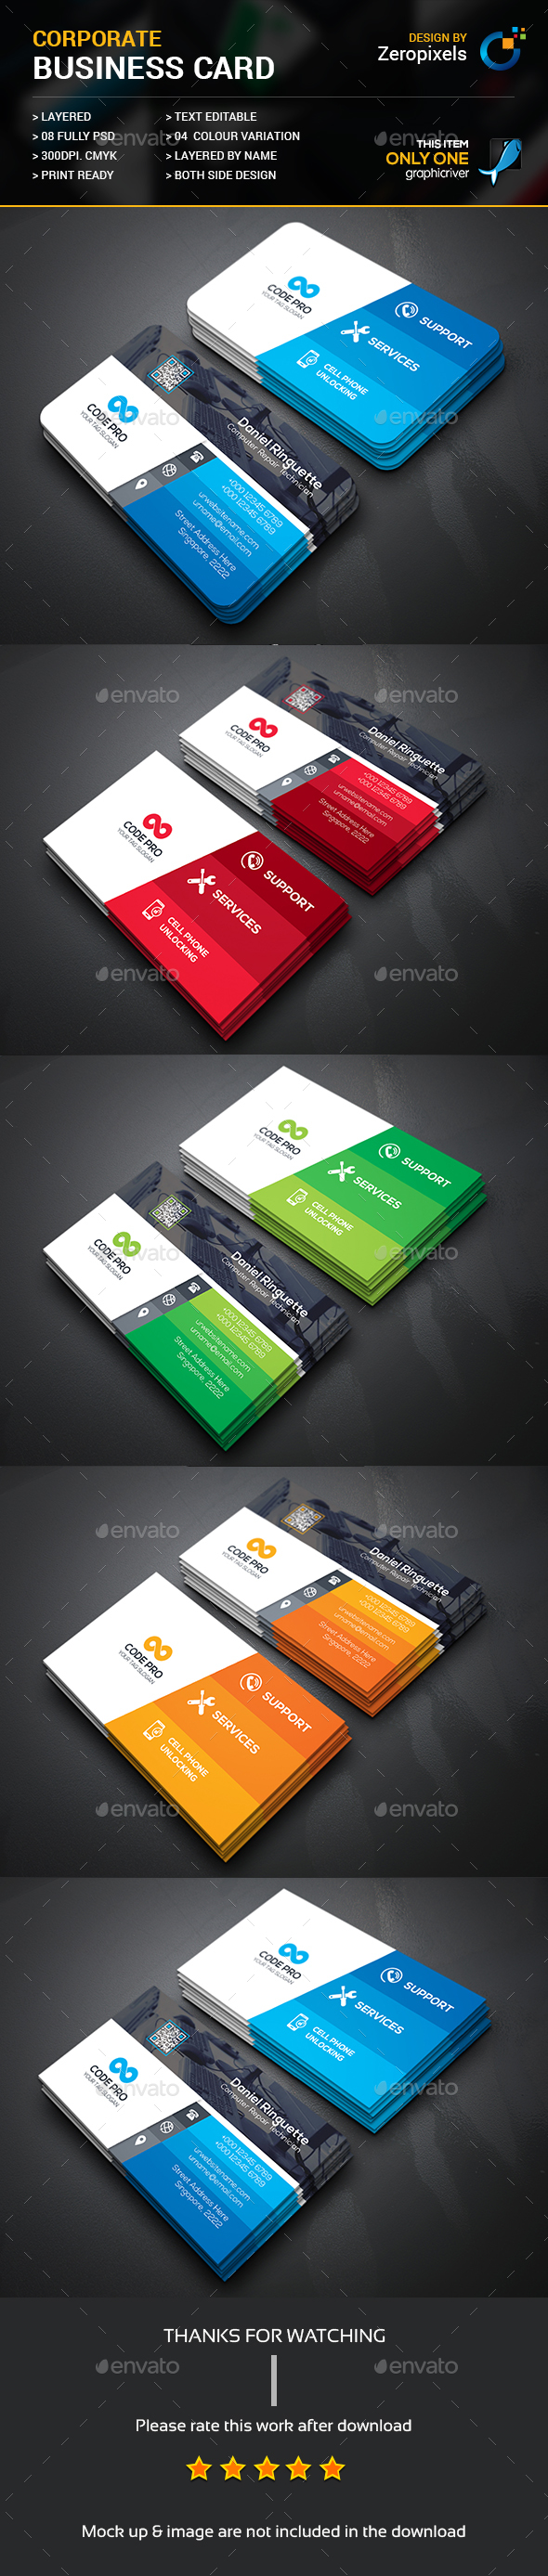 Medical Business Card Template Psd  Business Card Templates